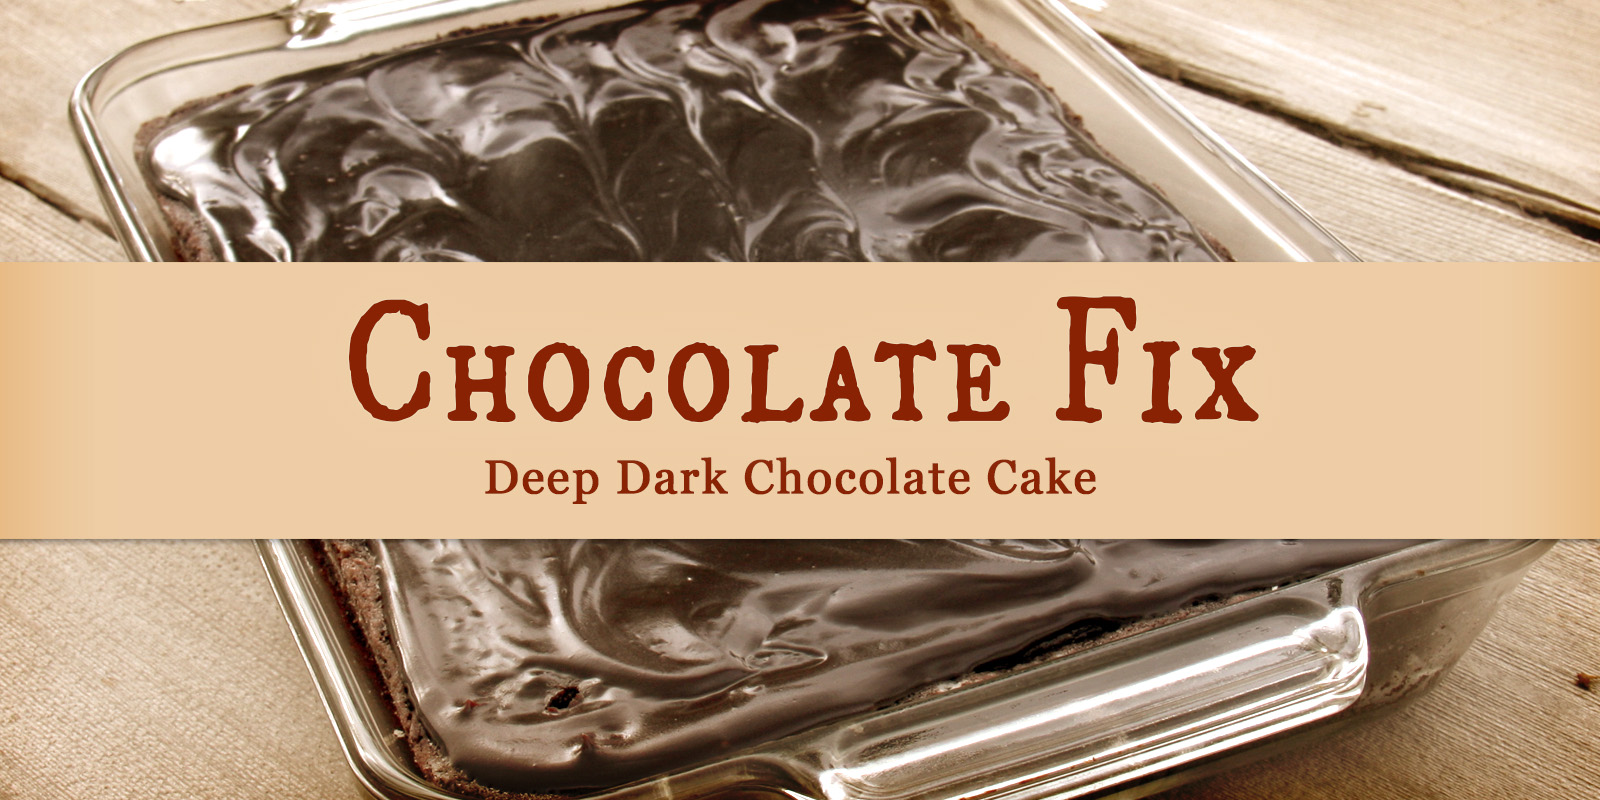 Chocolate Fix: Deep Dark Chocolate Cake — A long time ago, in a galaxy far, far away… Someone in my family discovered the recipe for an easy, scrumptious deep dark chocolate cake. I don't know who it was or where they found it, but the flavor and texture were to die for. We made it a lot. It swiftly became the go-to chocolate cake recipe.